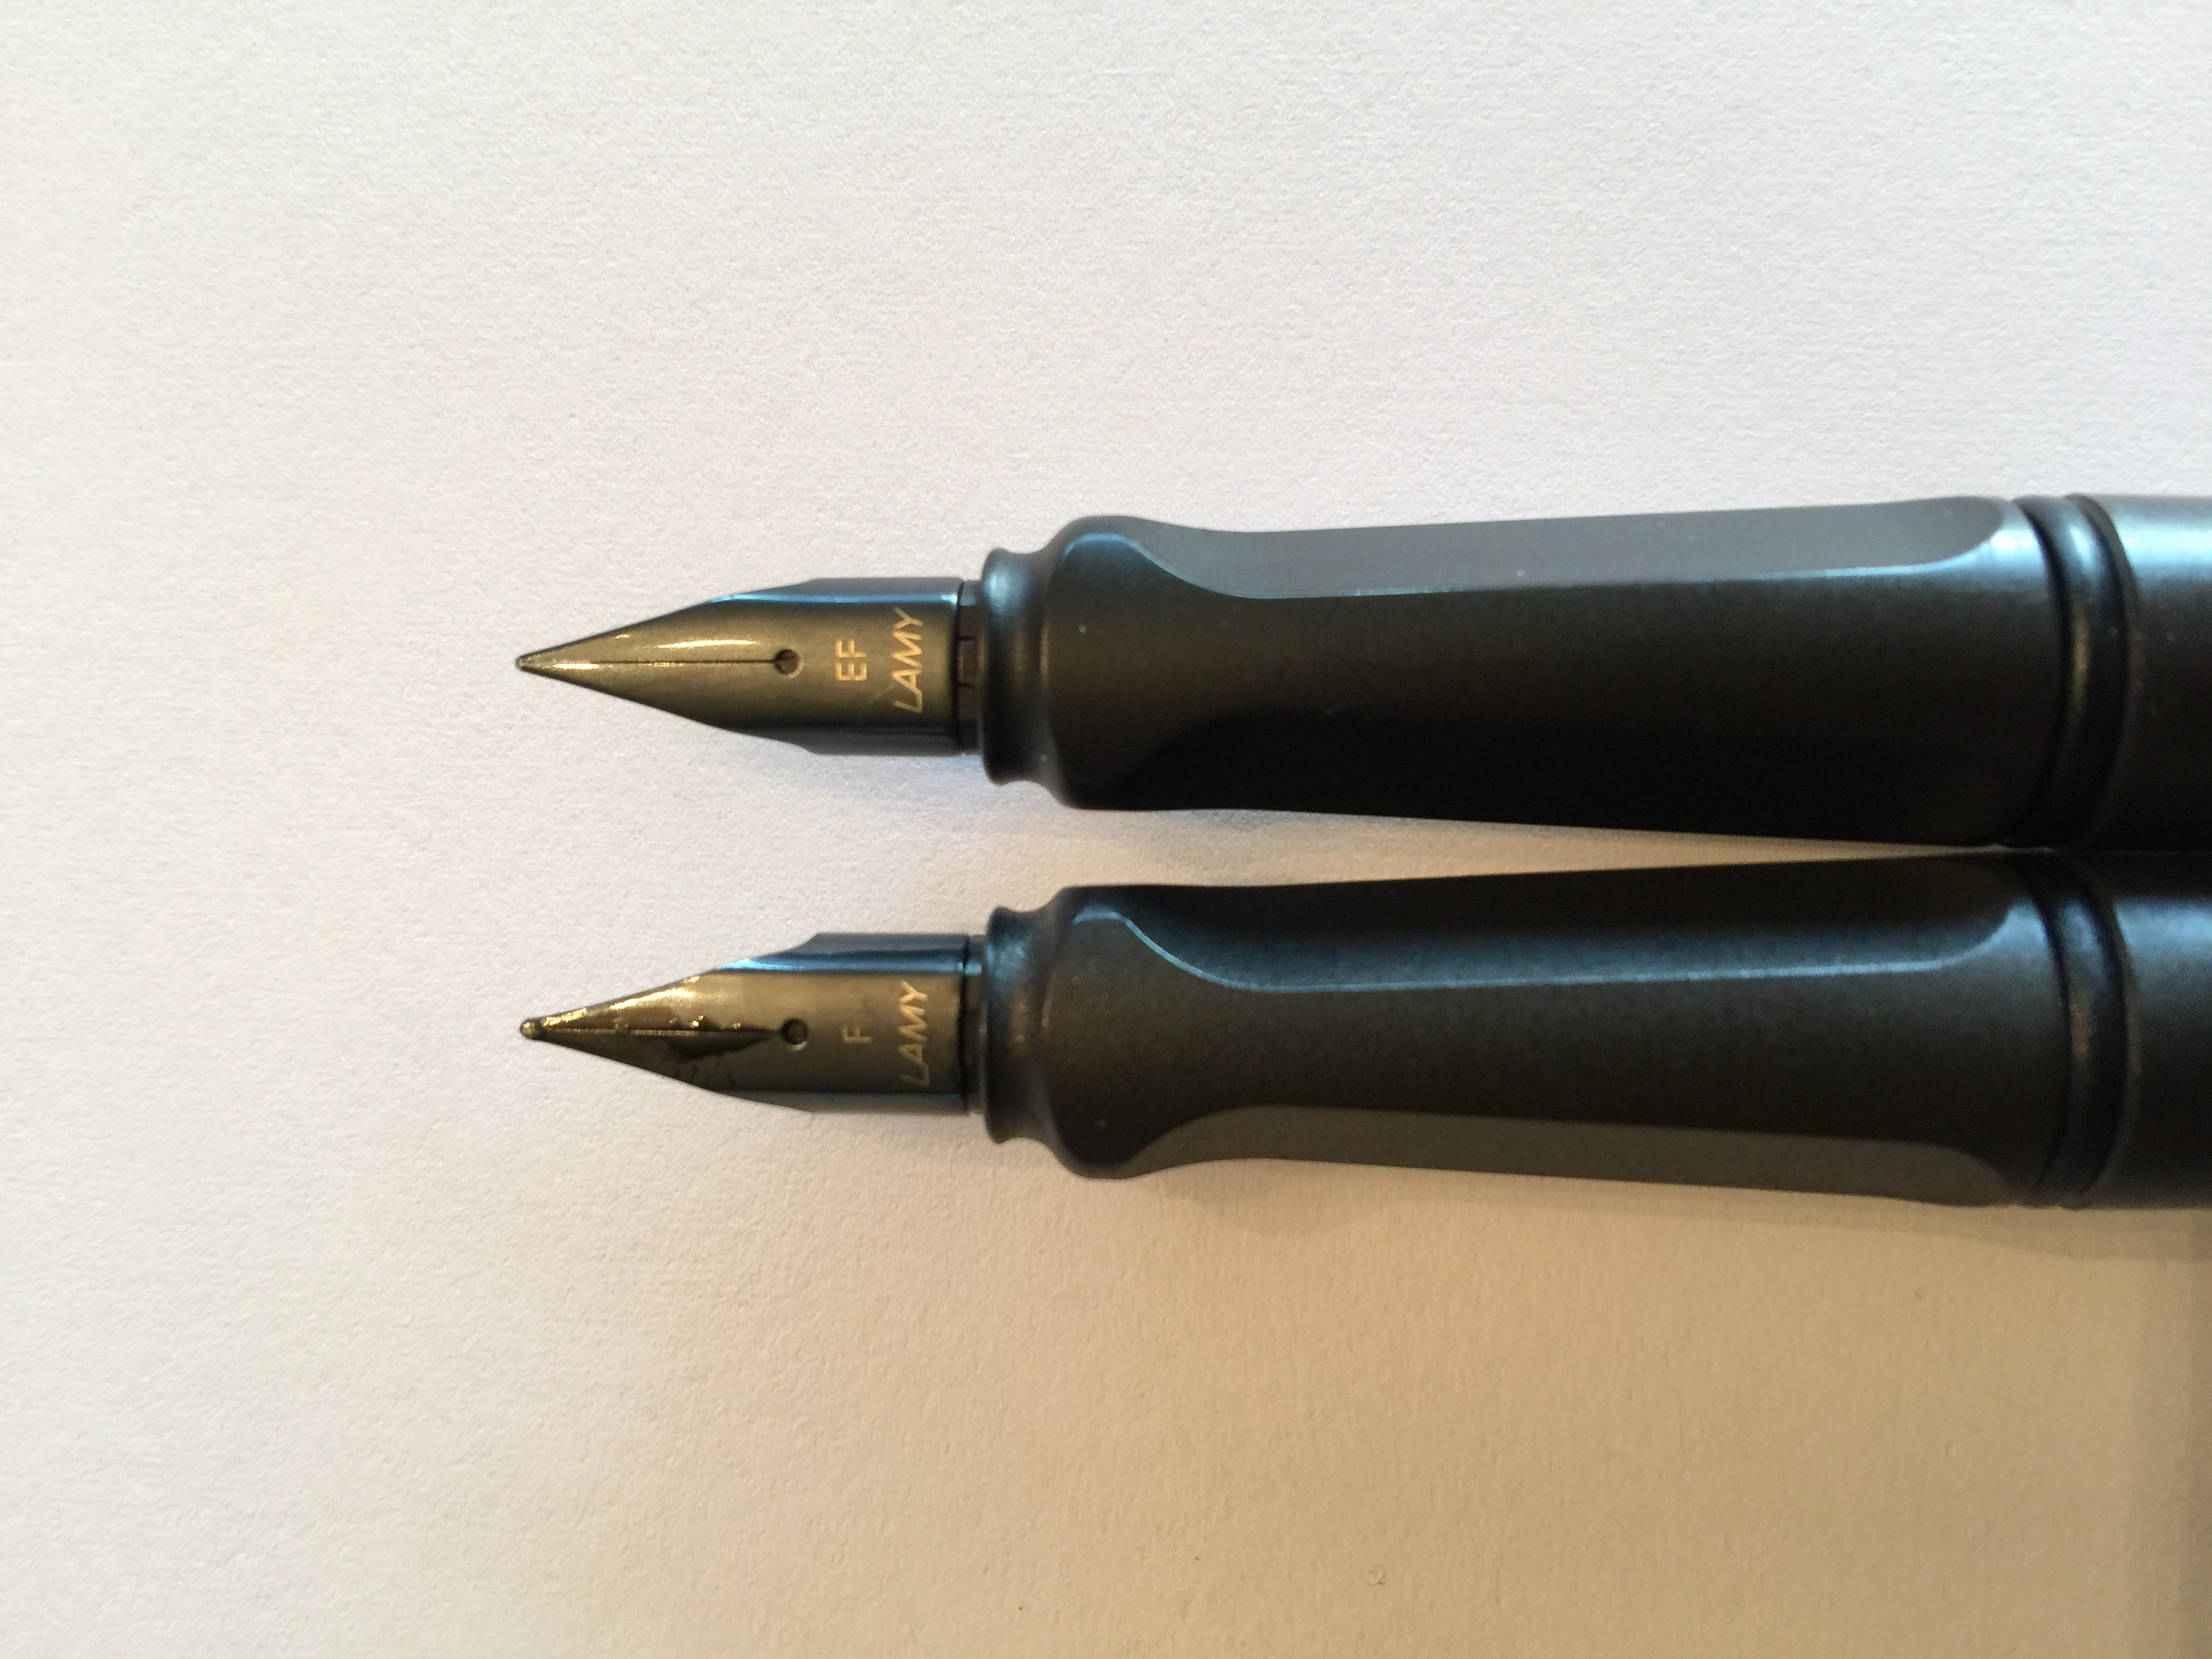 Top: Counterfeit with a legit EF nib from Goulet; Bottom: Legit pen & nib. Notice the subtle differences in the edges on the grip and the space between the nibs and feed from the body.